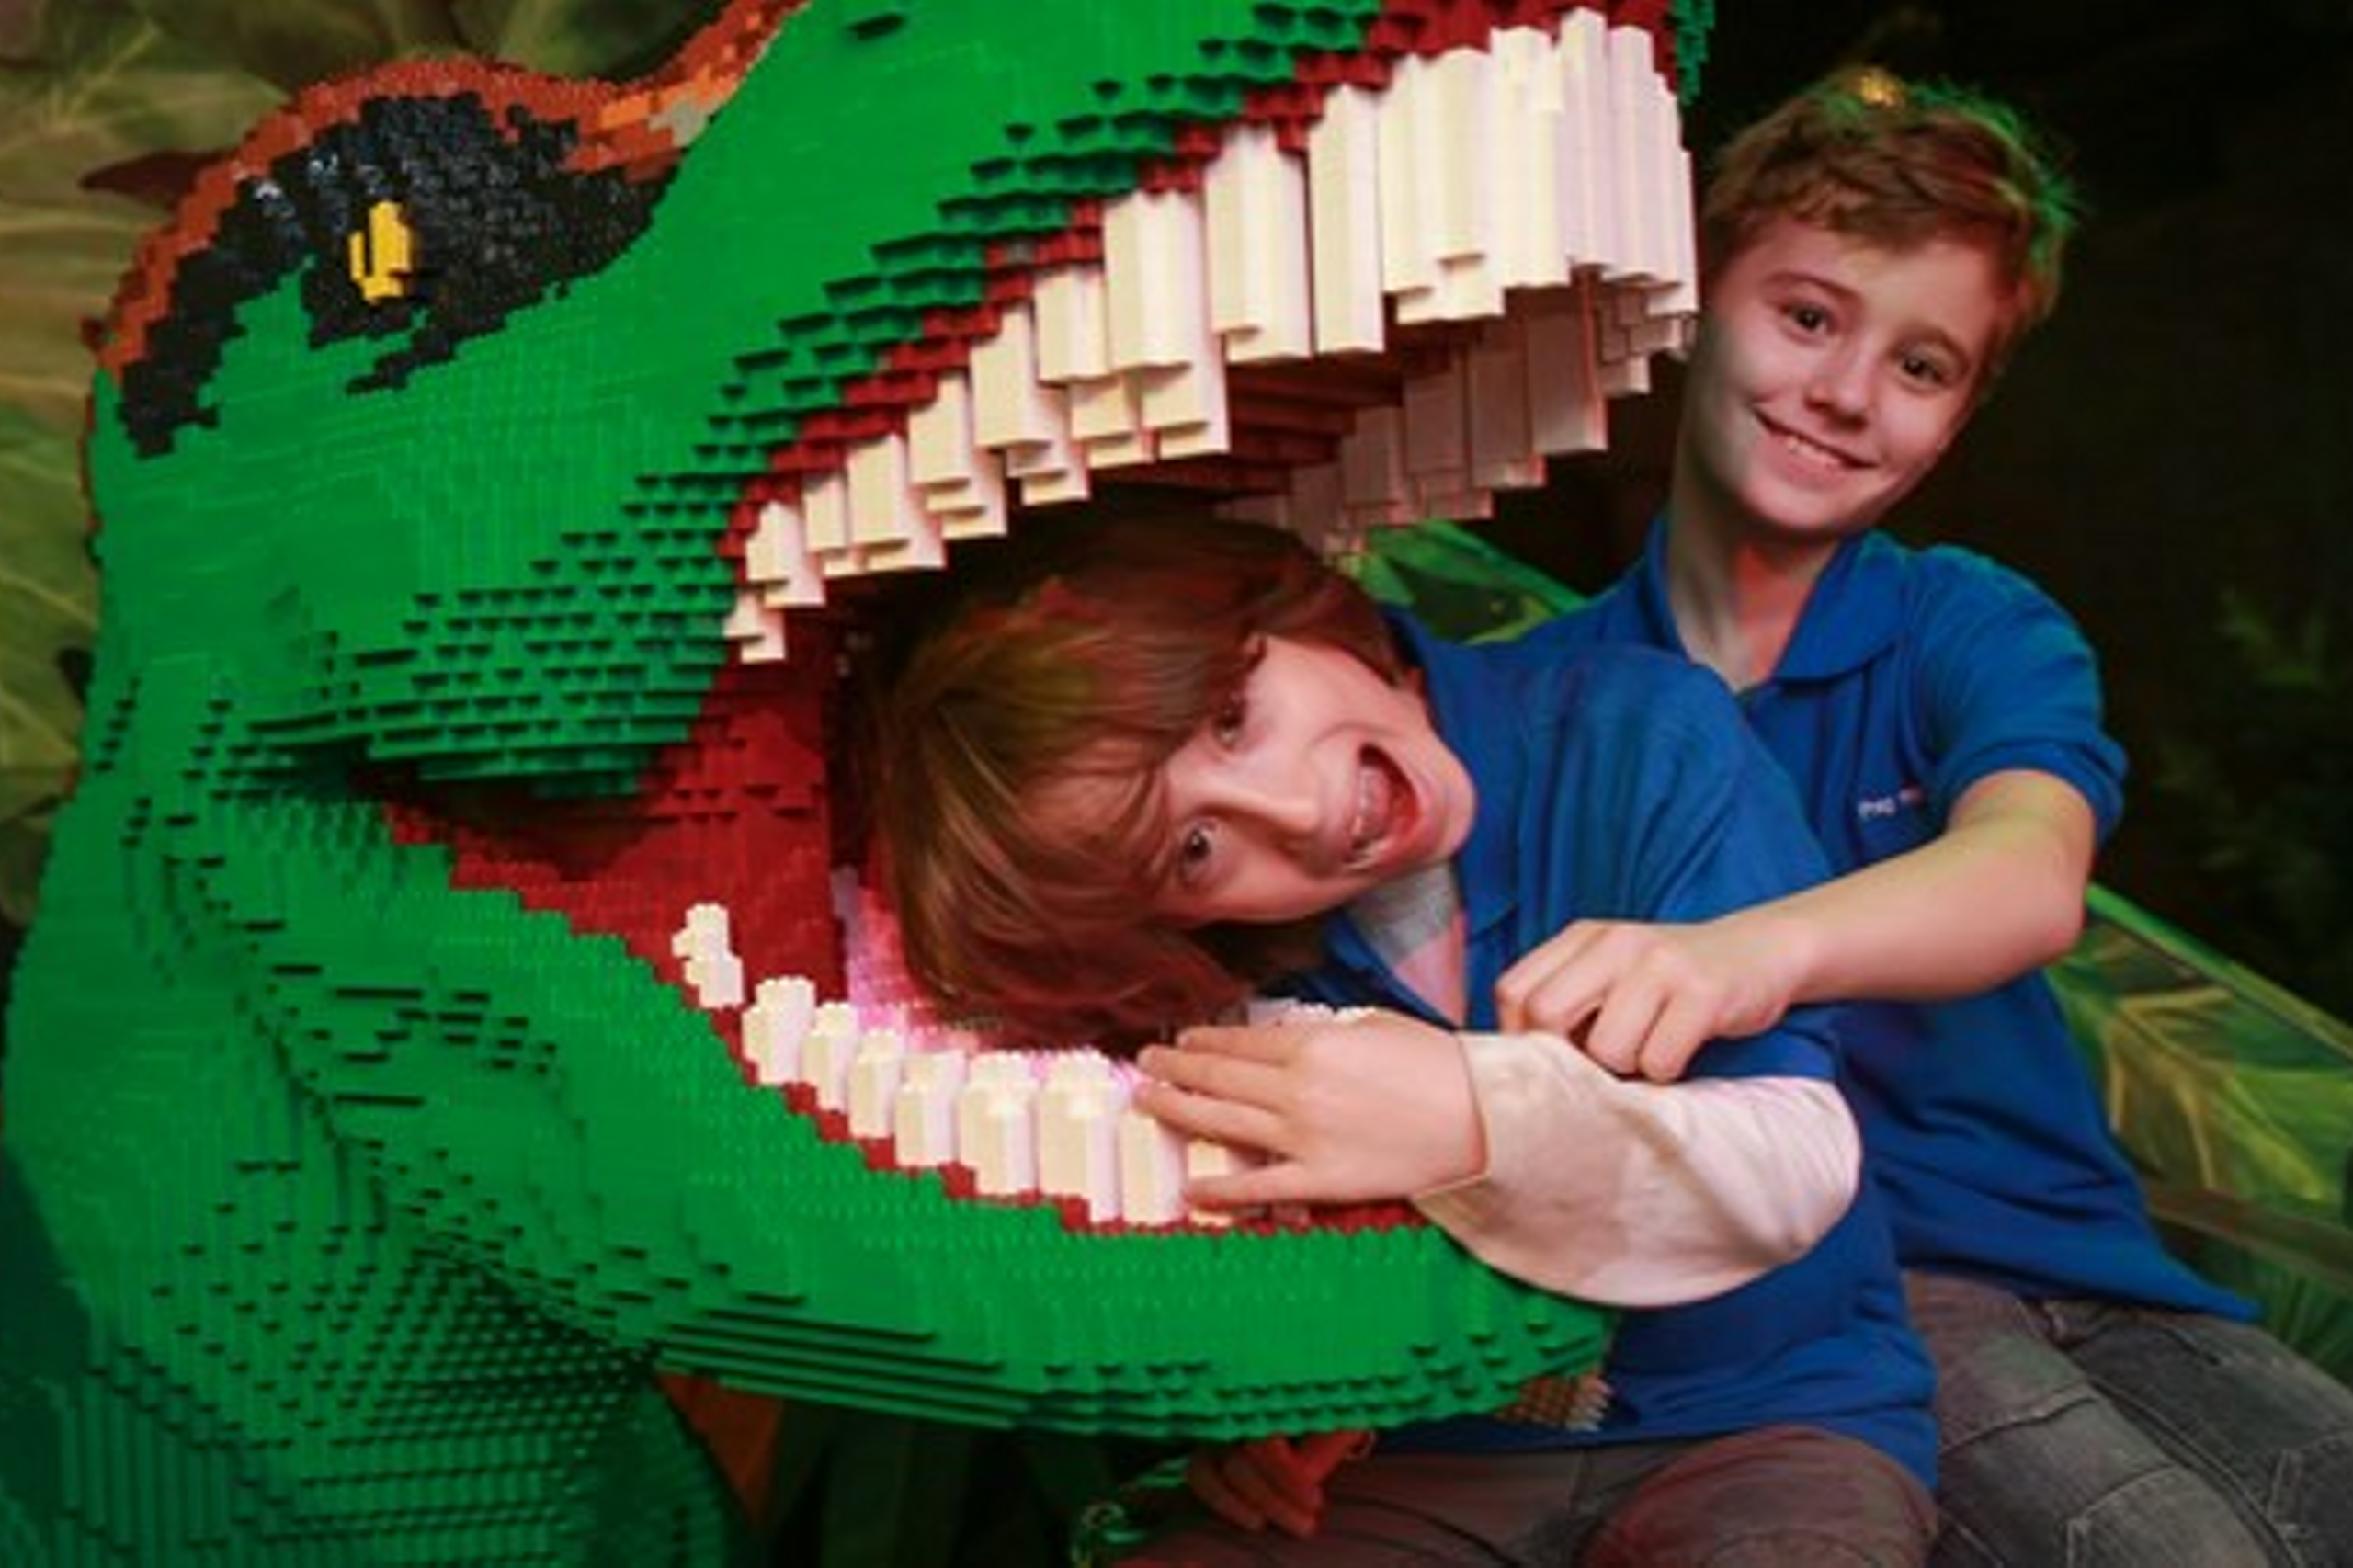 Play, Build, and Create at Lego Land in Tempe, Arizona!